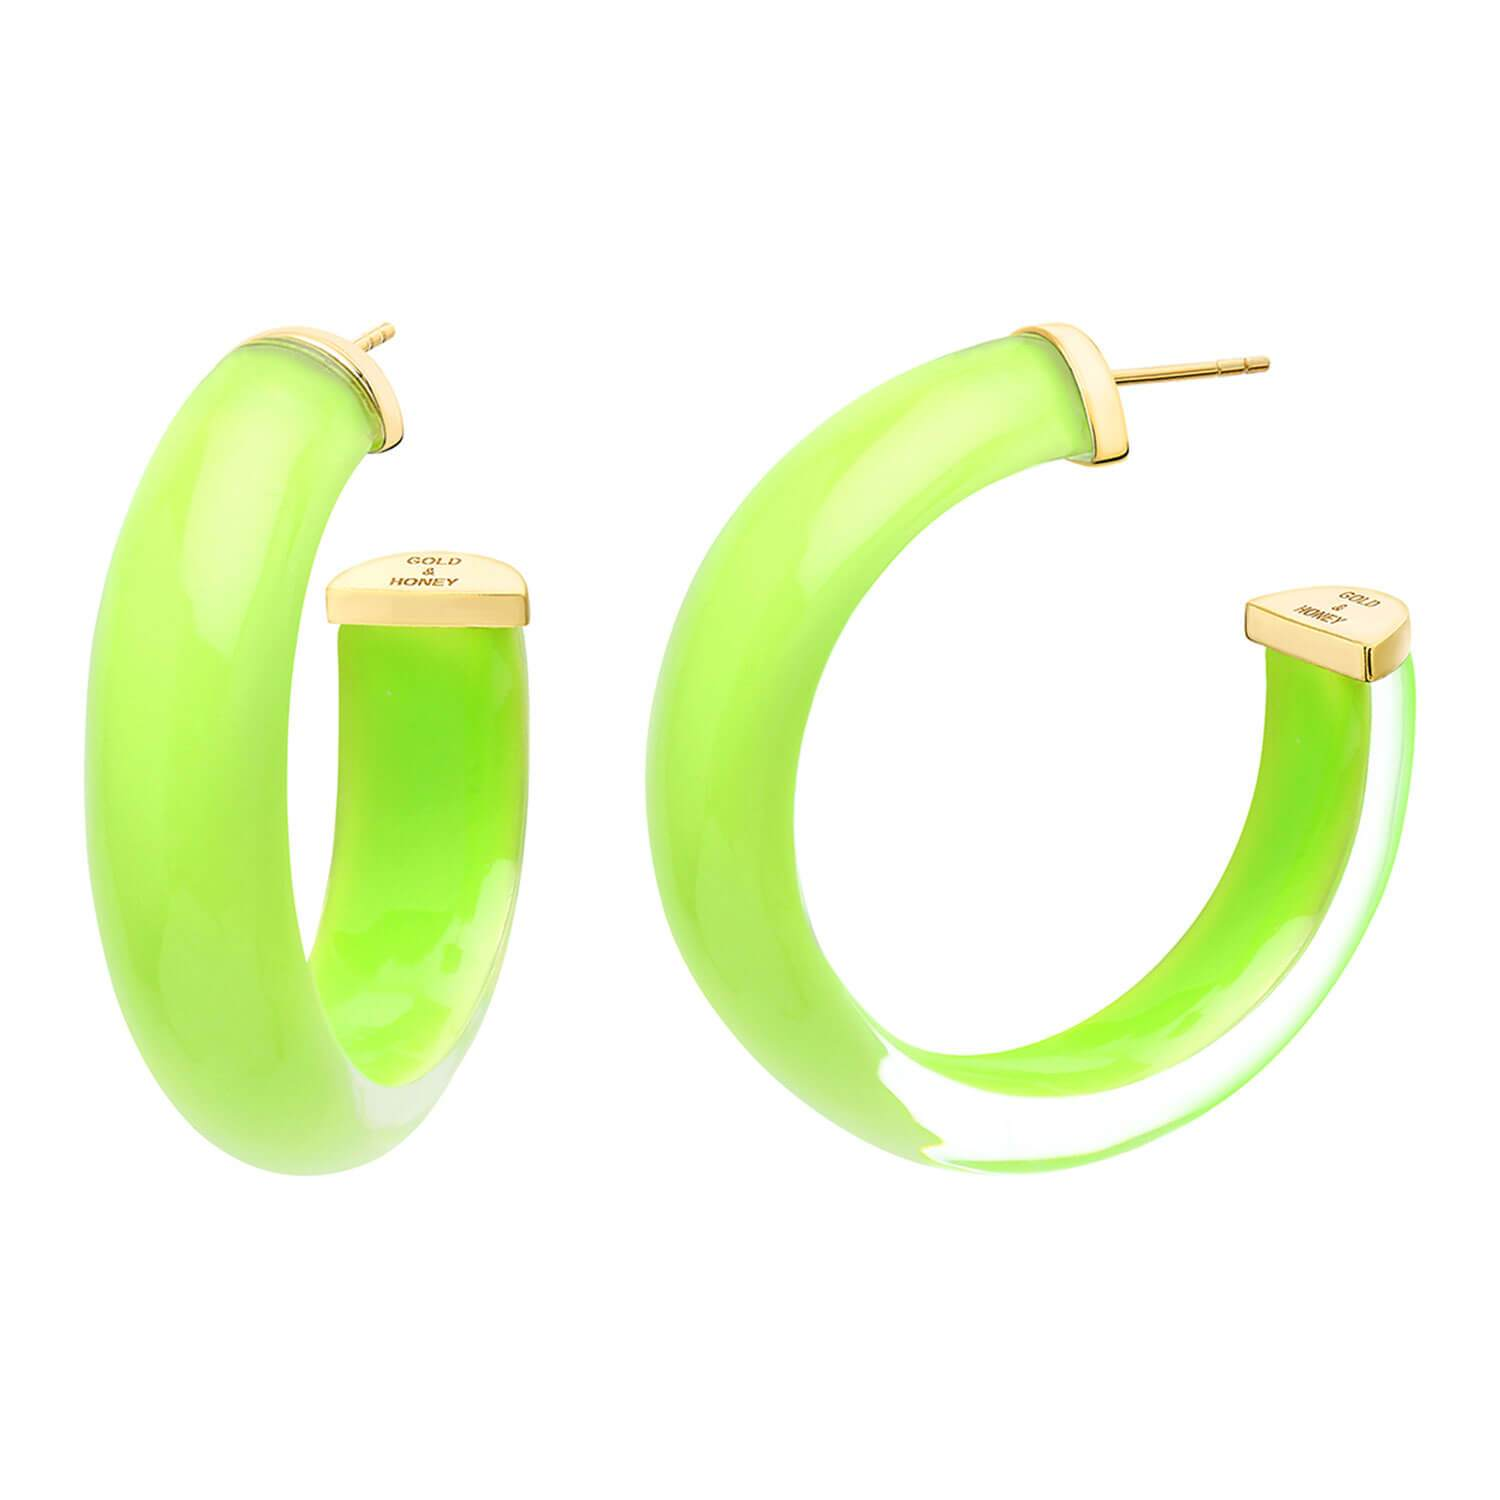 Medium Illusion Lucite Hoops in NEON GREEN